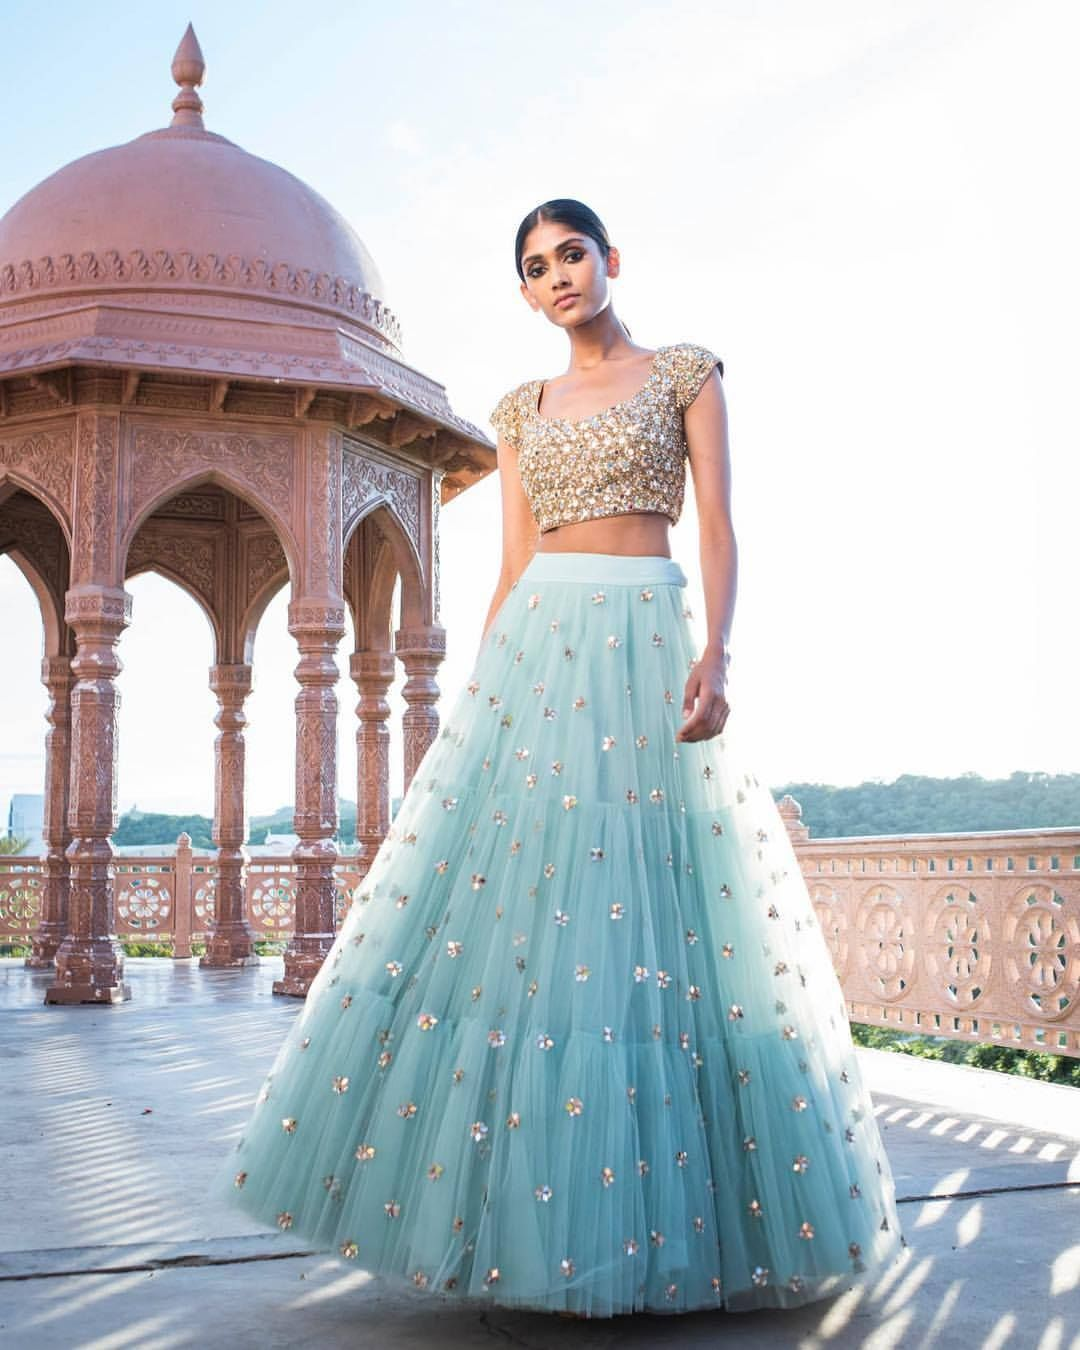 f3f49d314ea931 Beautiful powder blue color designer lehenga and blouse with hand embroidery  thread work. 24 September 2017